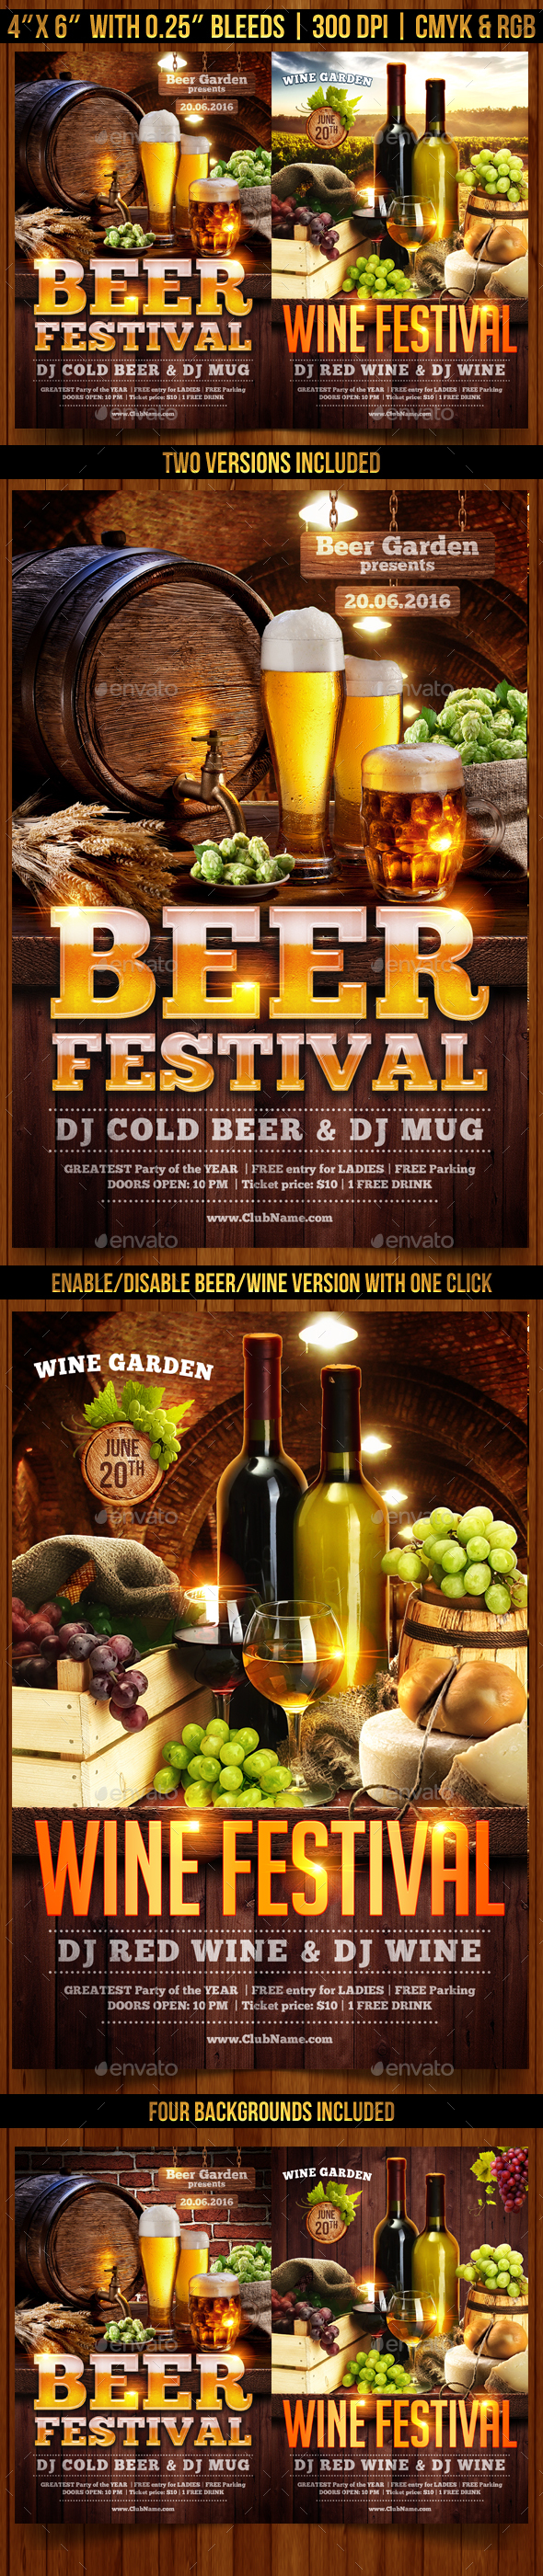 Beer Garden Graphics, Designs & Templates from GraphicRiver